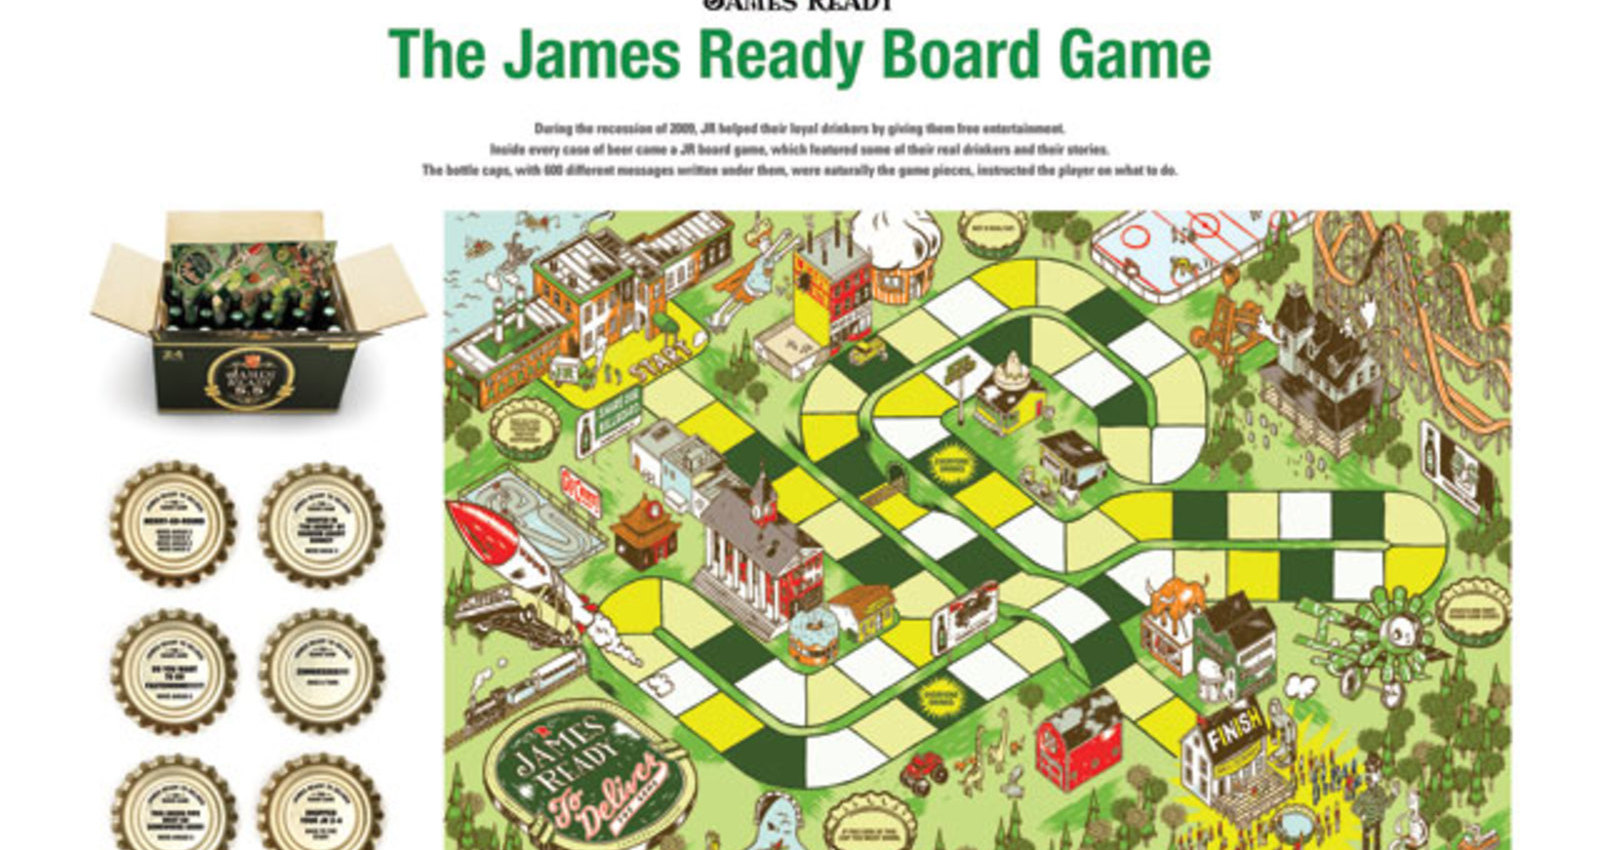 James Ready Board Game